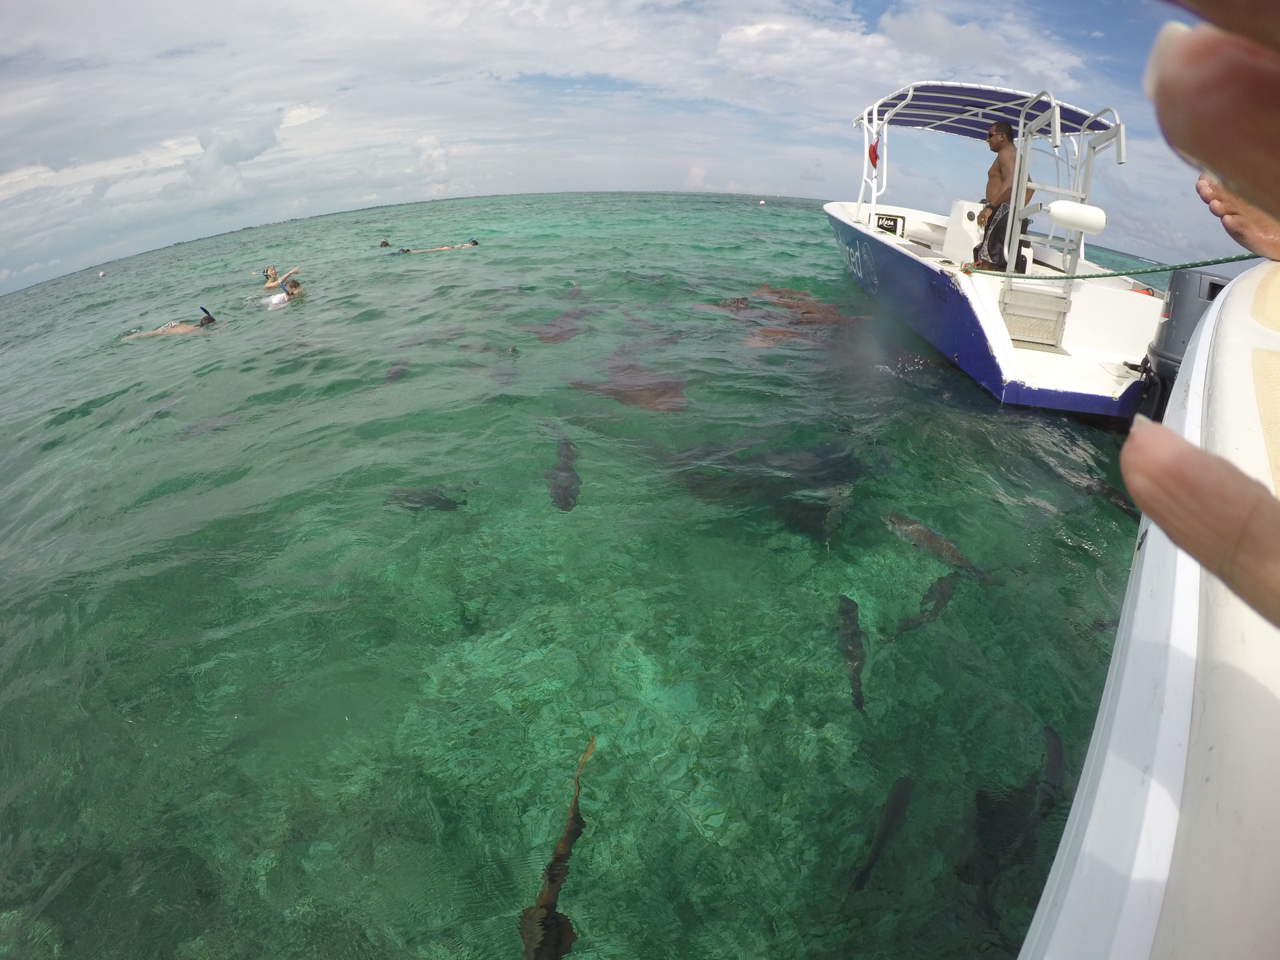 Photos of snorkeling and fishing in Belize shark Ray alley and Hol chan - 32 of 114